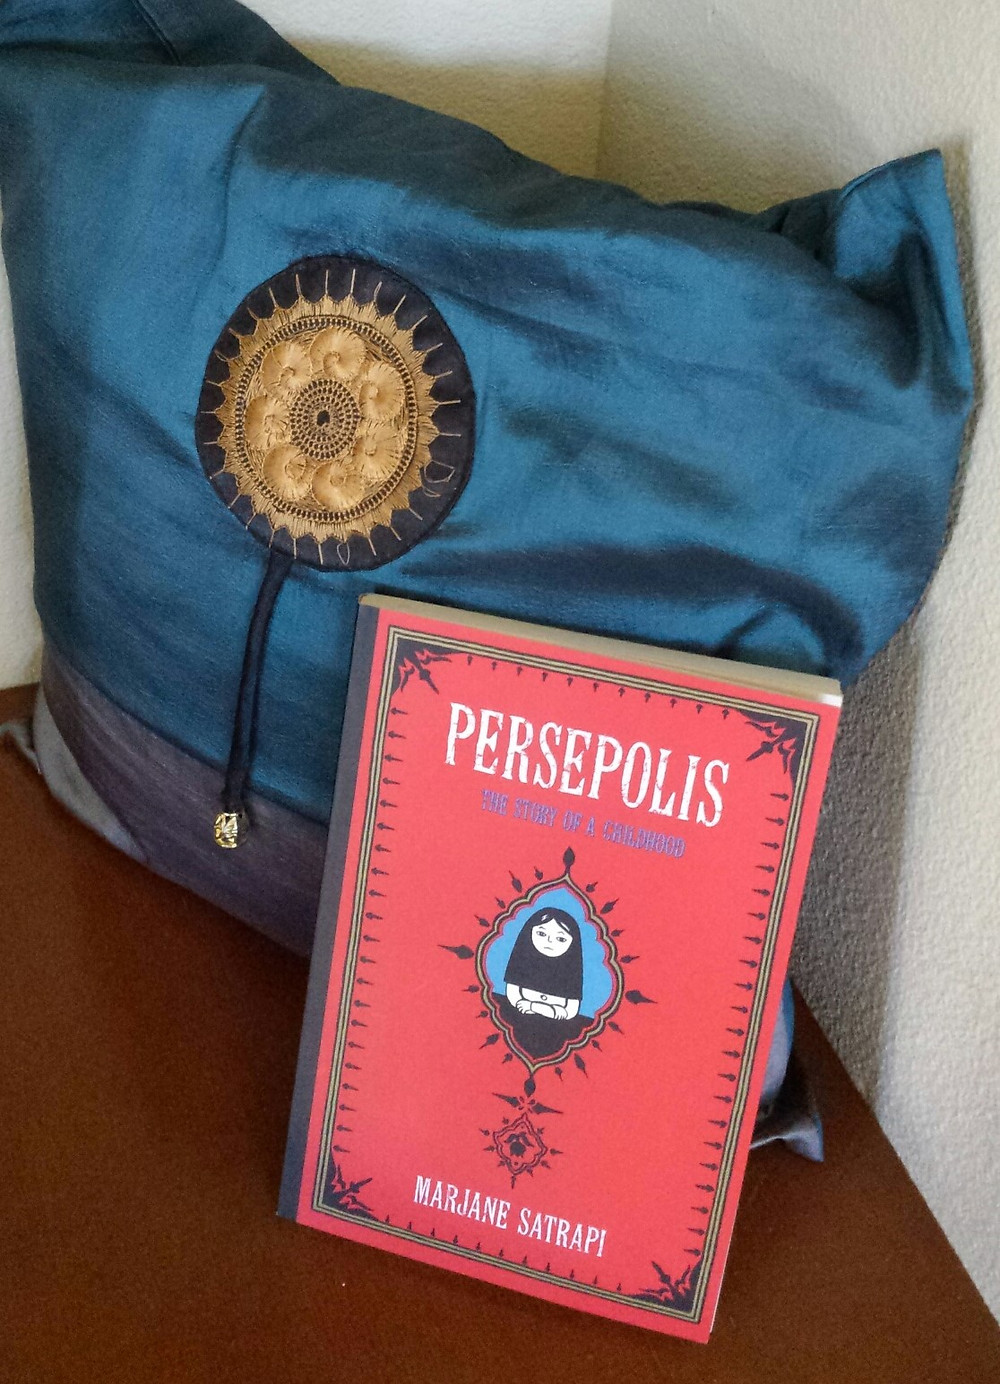 Persepolis graphic novel and Persian-style pillow.